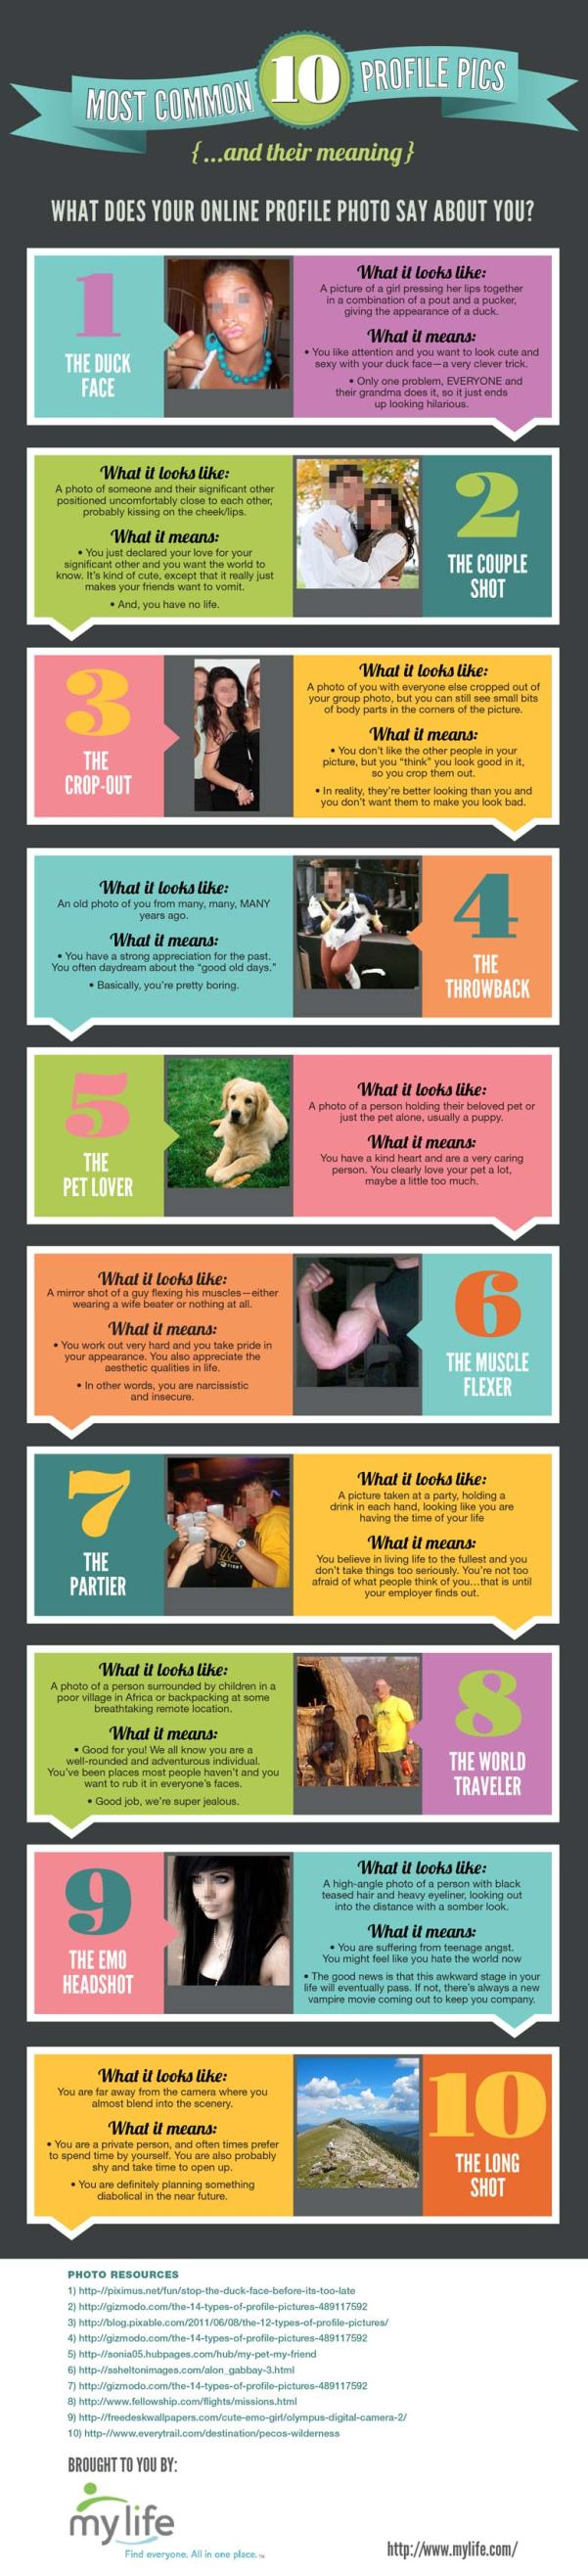 ten-most-common-profile-pics-and-their-meaning